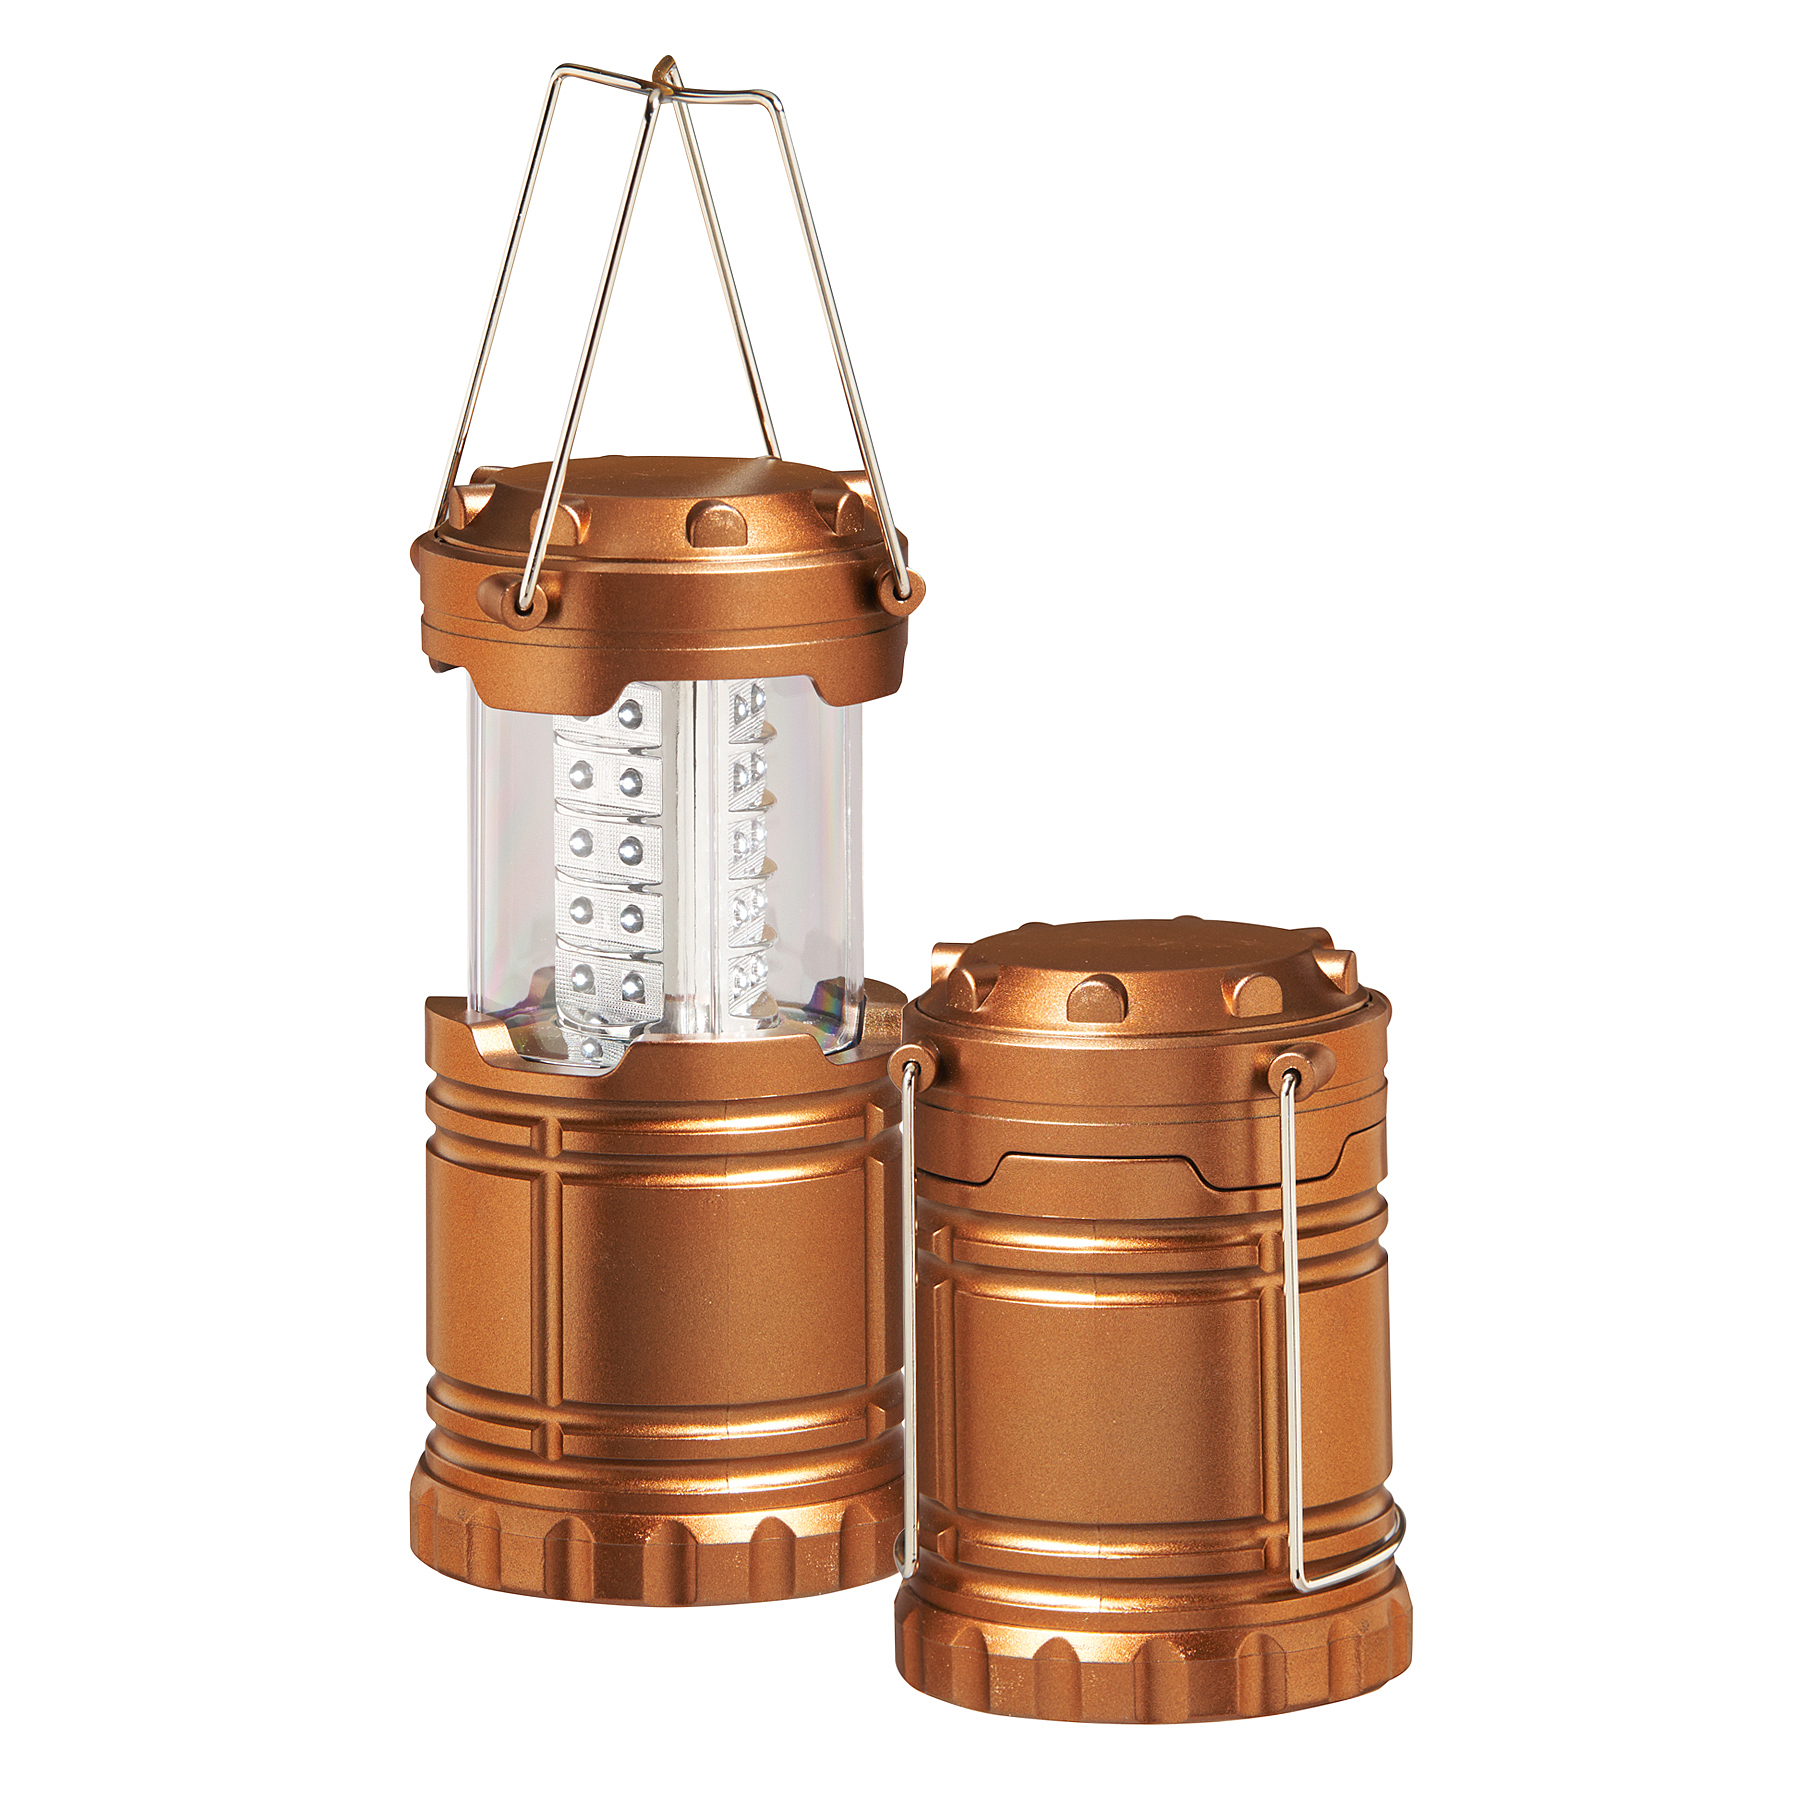 Equipped Outdoors LED Camping Lantern for Hiking, Emergencies, or Tent Light (2 Pack)